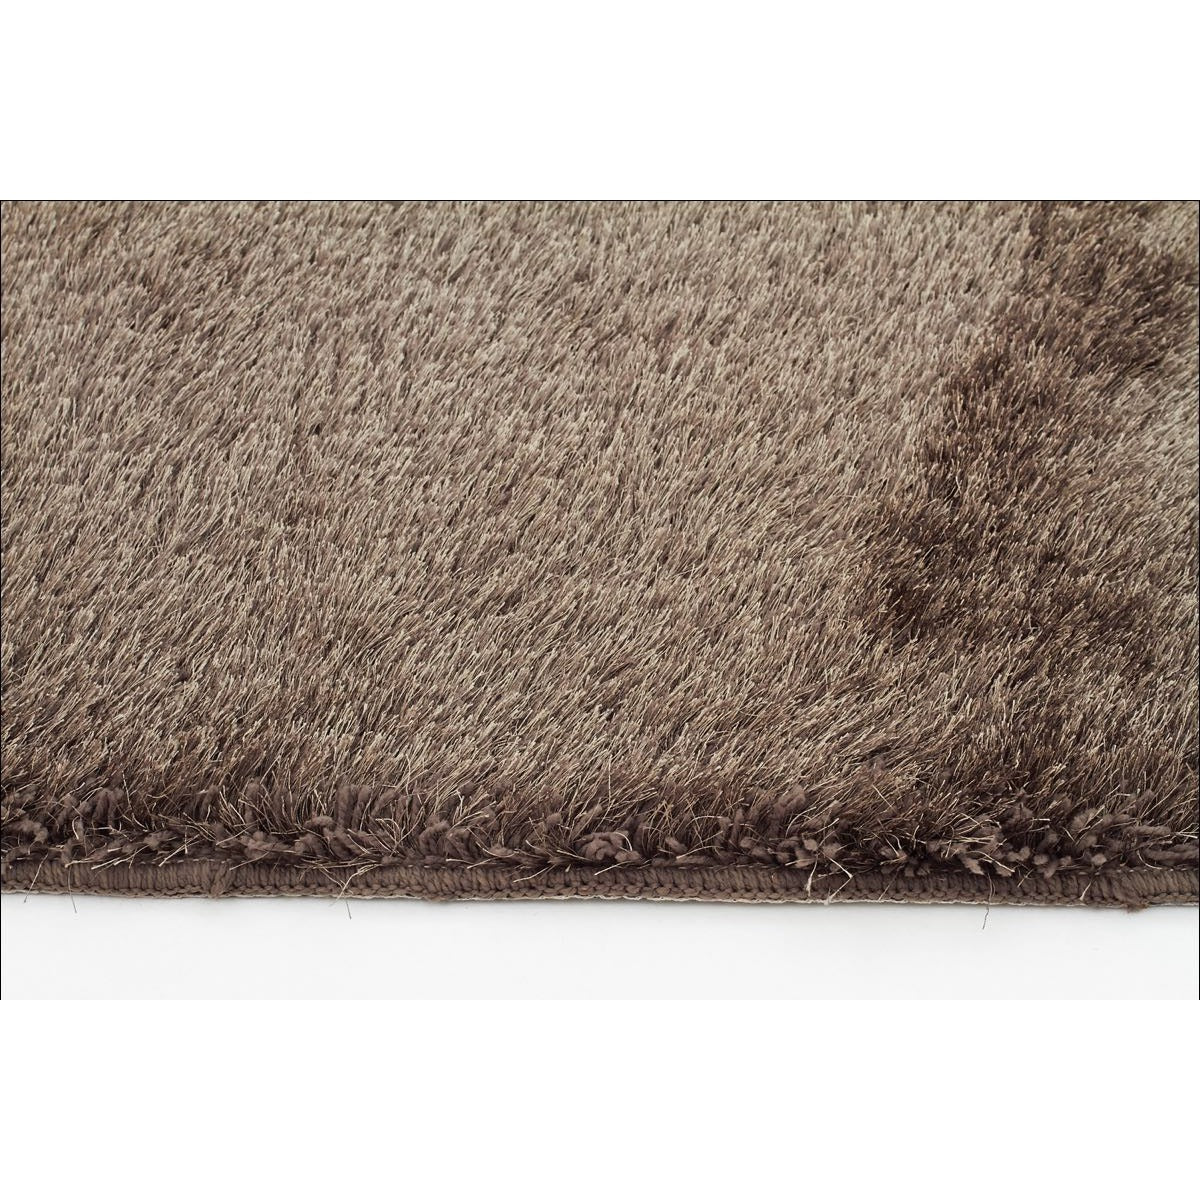 twilight shag rug  ash brown modern shaggy rug – rugs of beauty -  twilight shag rug  ash brown modern shaggy rug  rugs of beauty